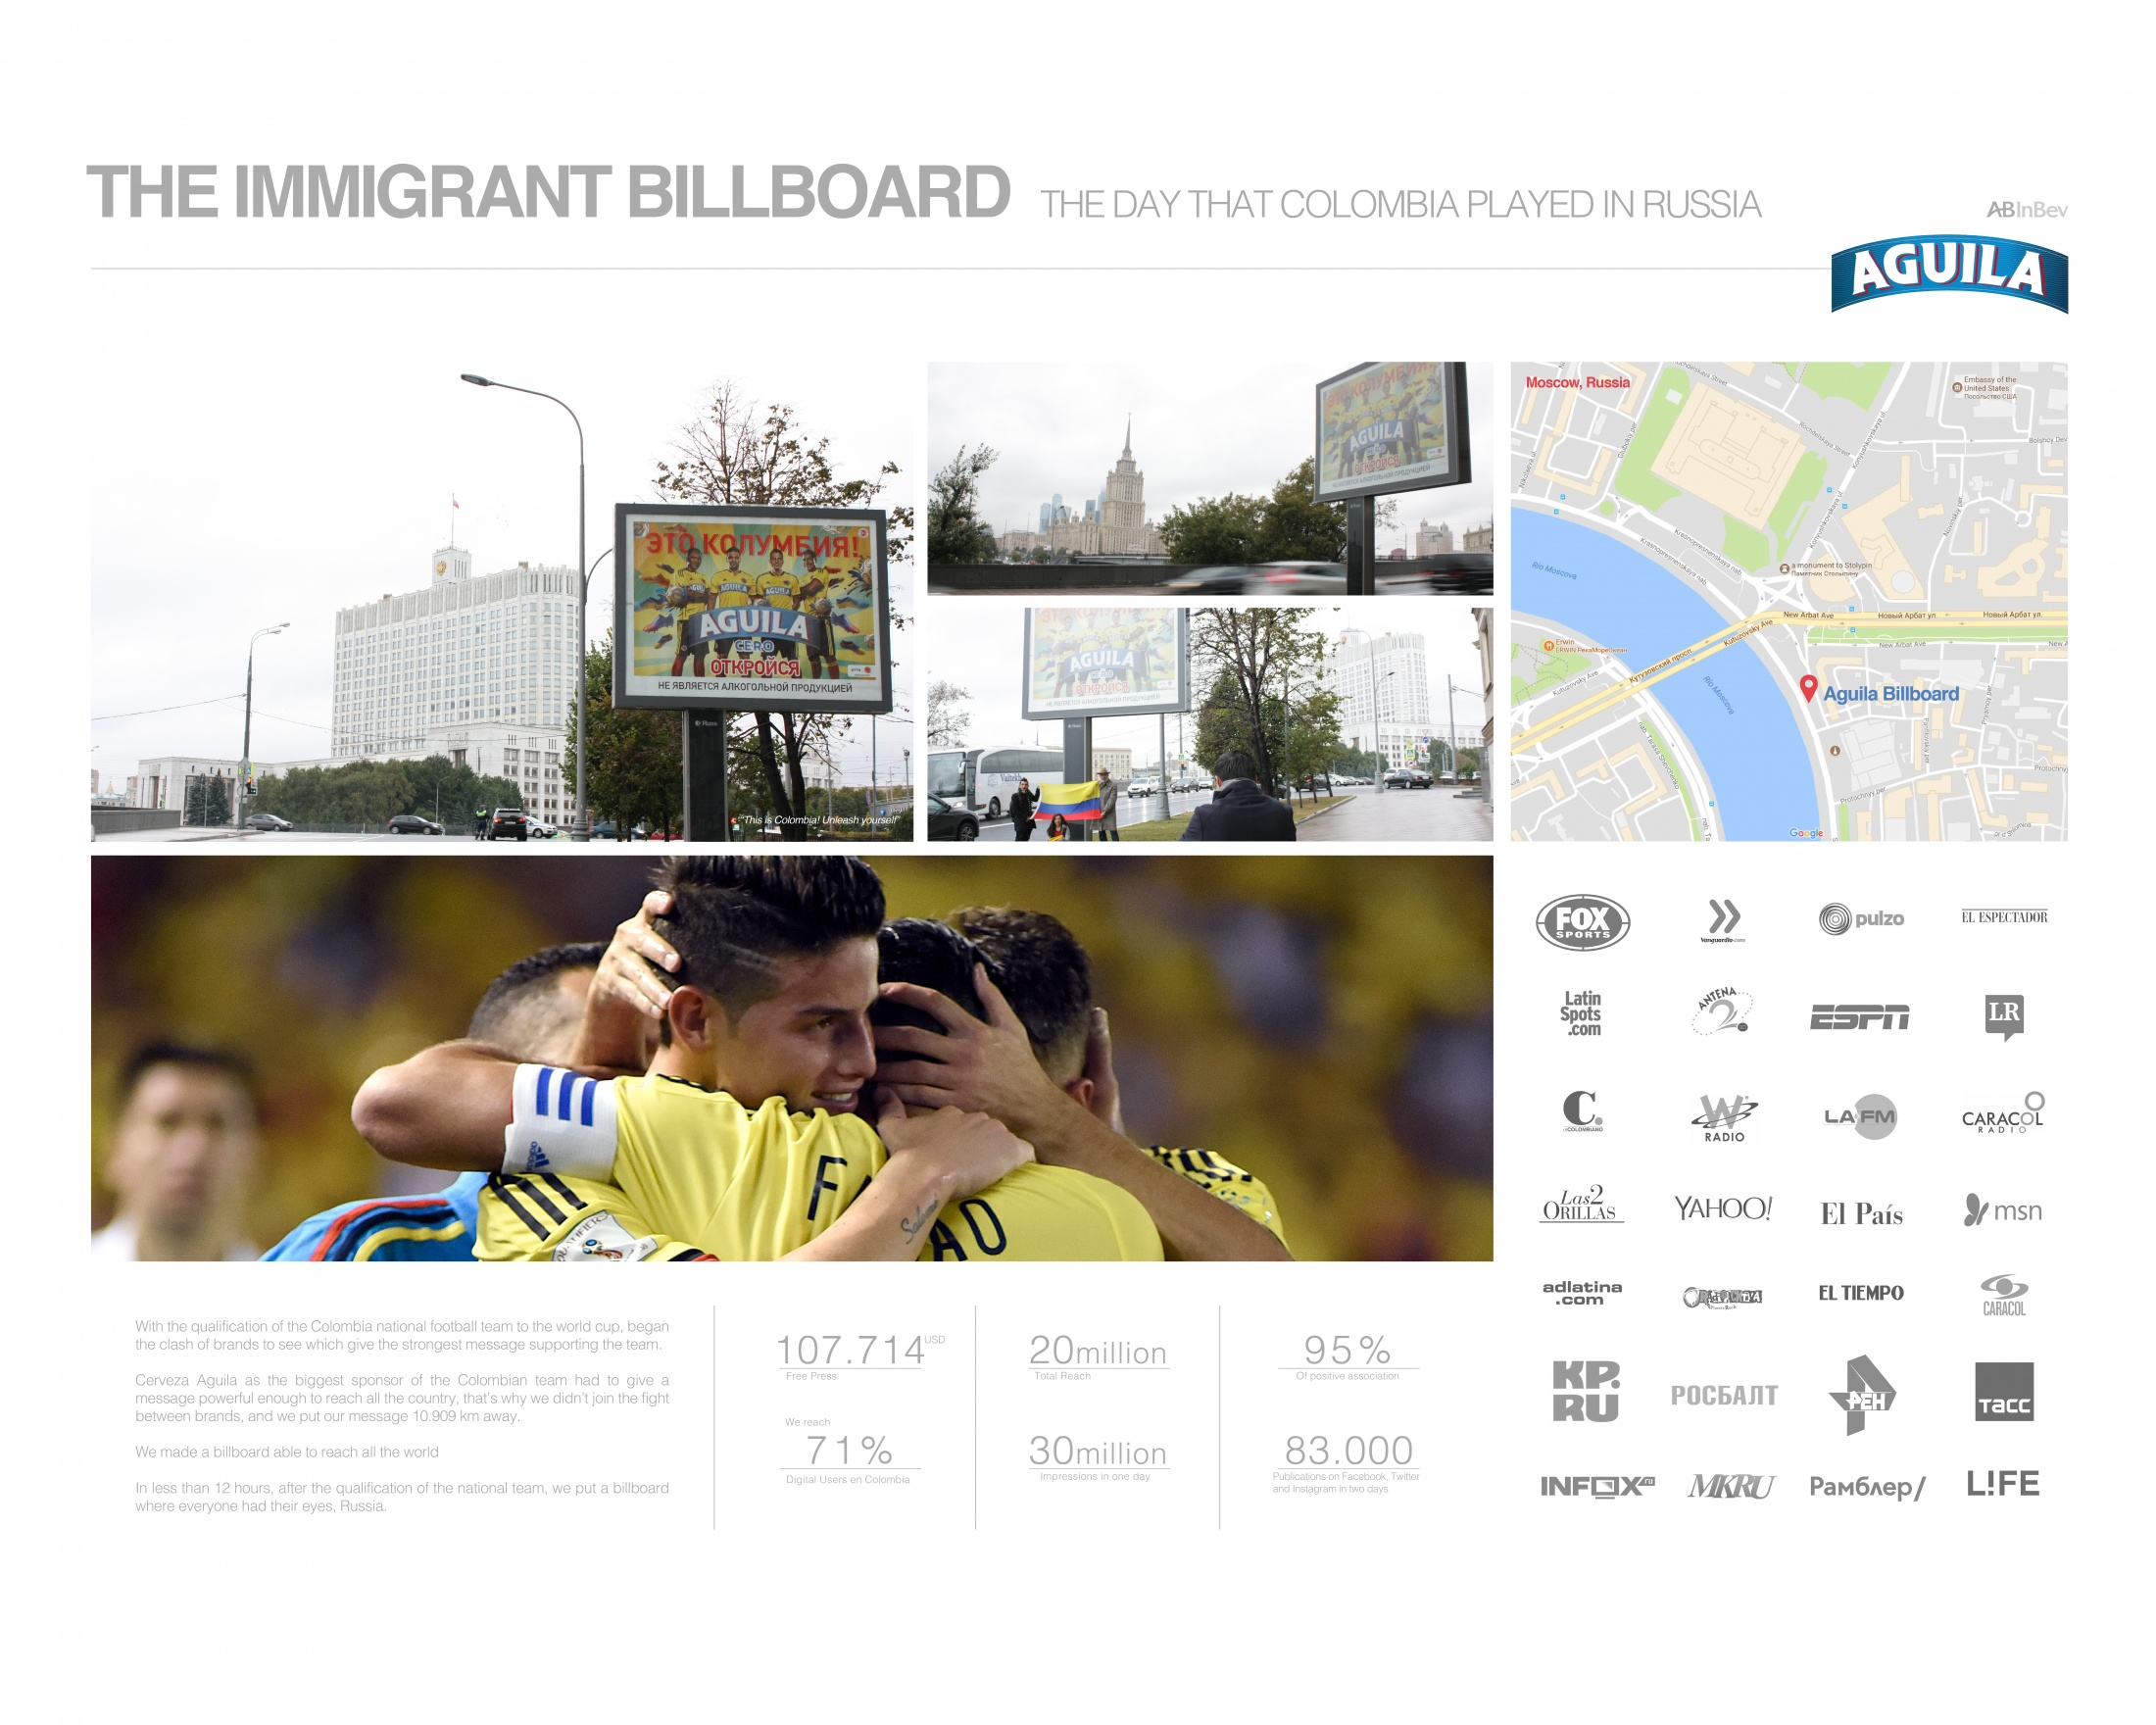 Thumbnail for The Immigrant Billboard